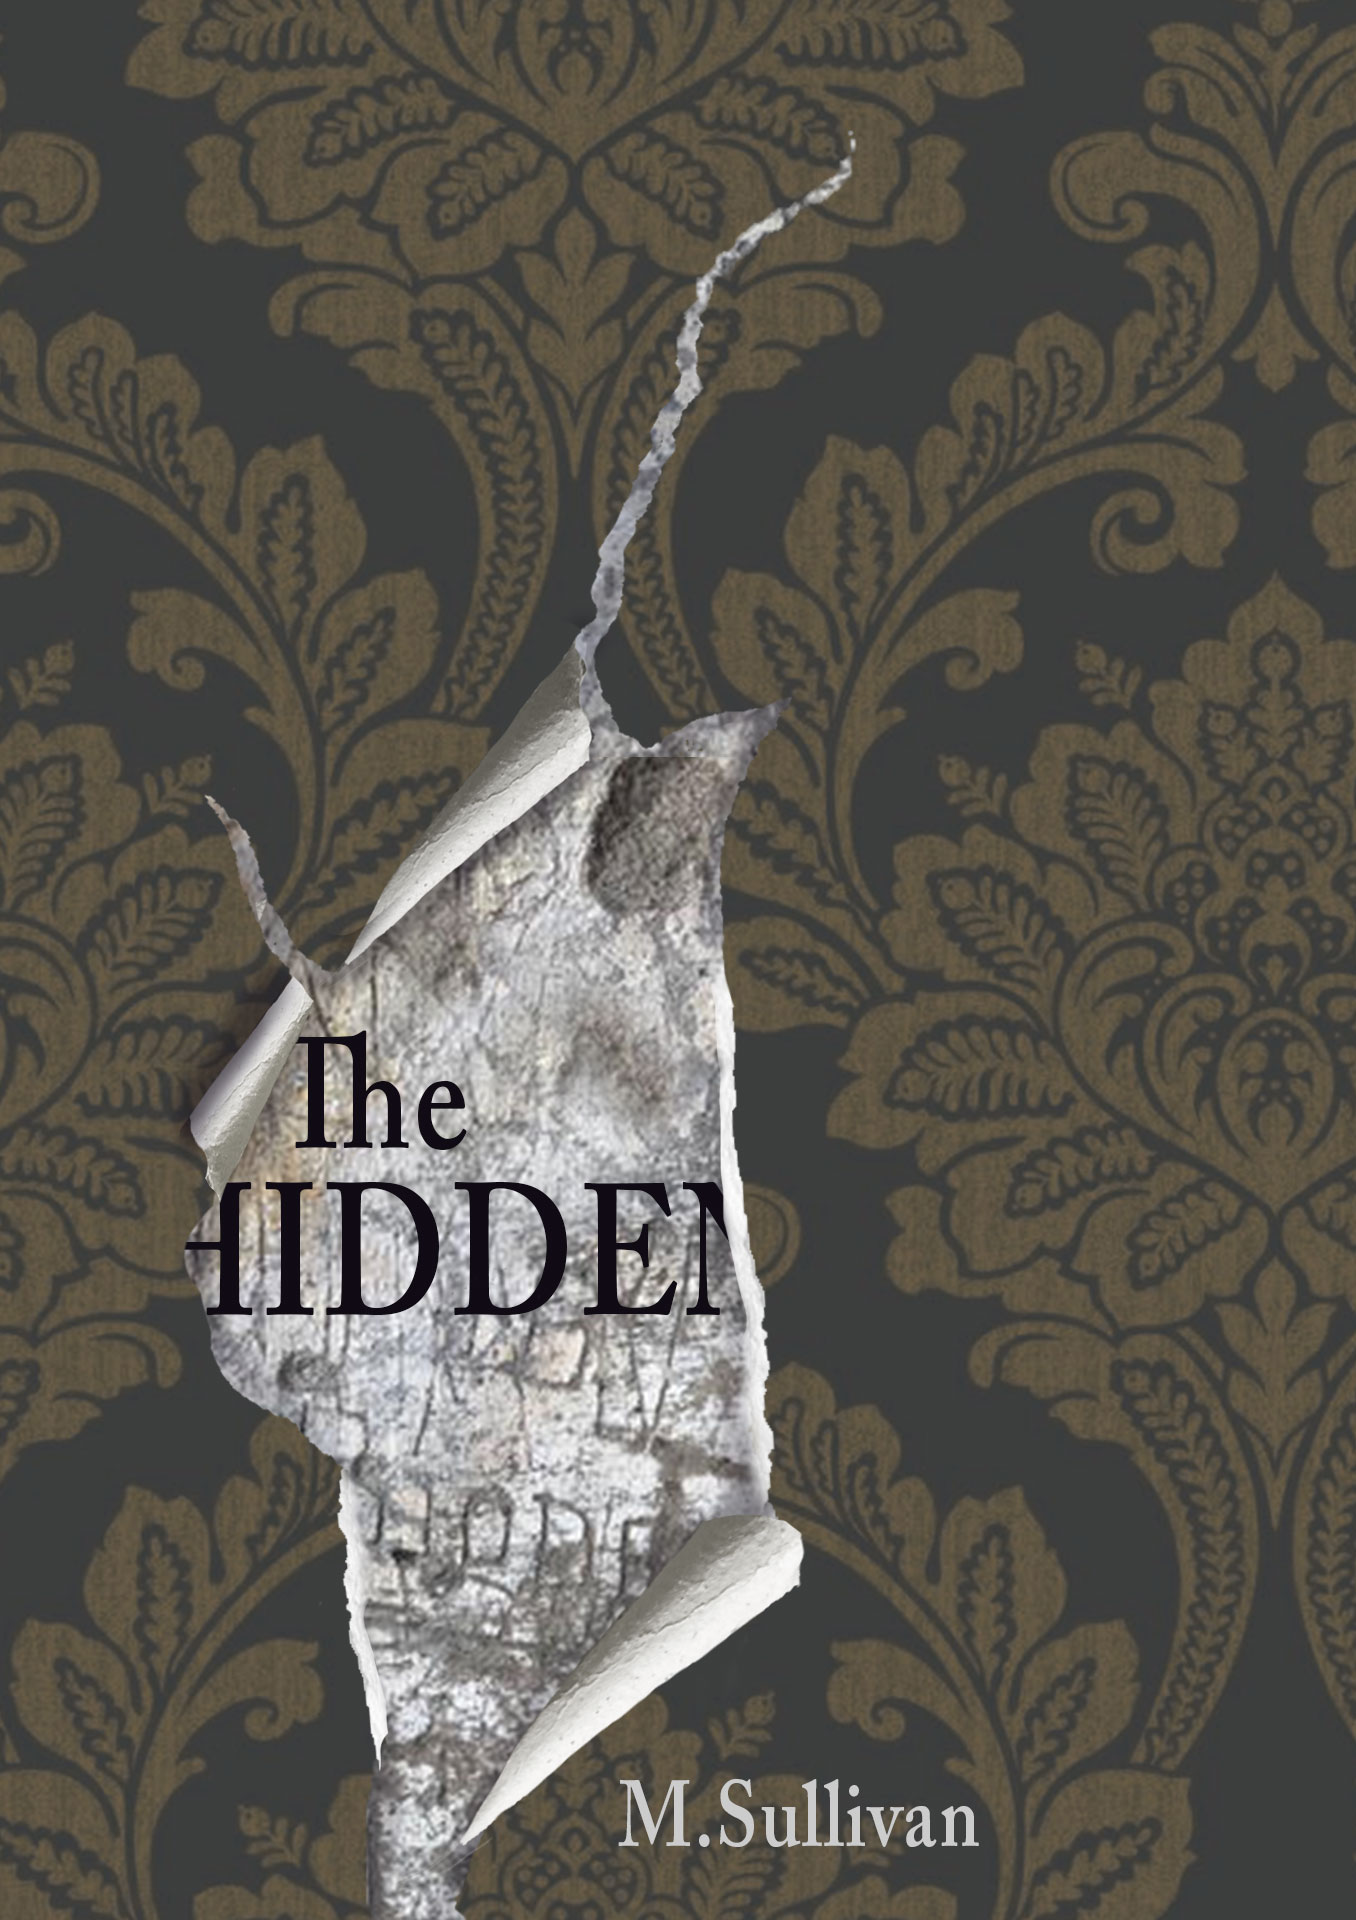 The-Hidden-bookcover-2